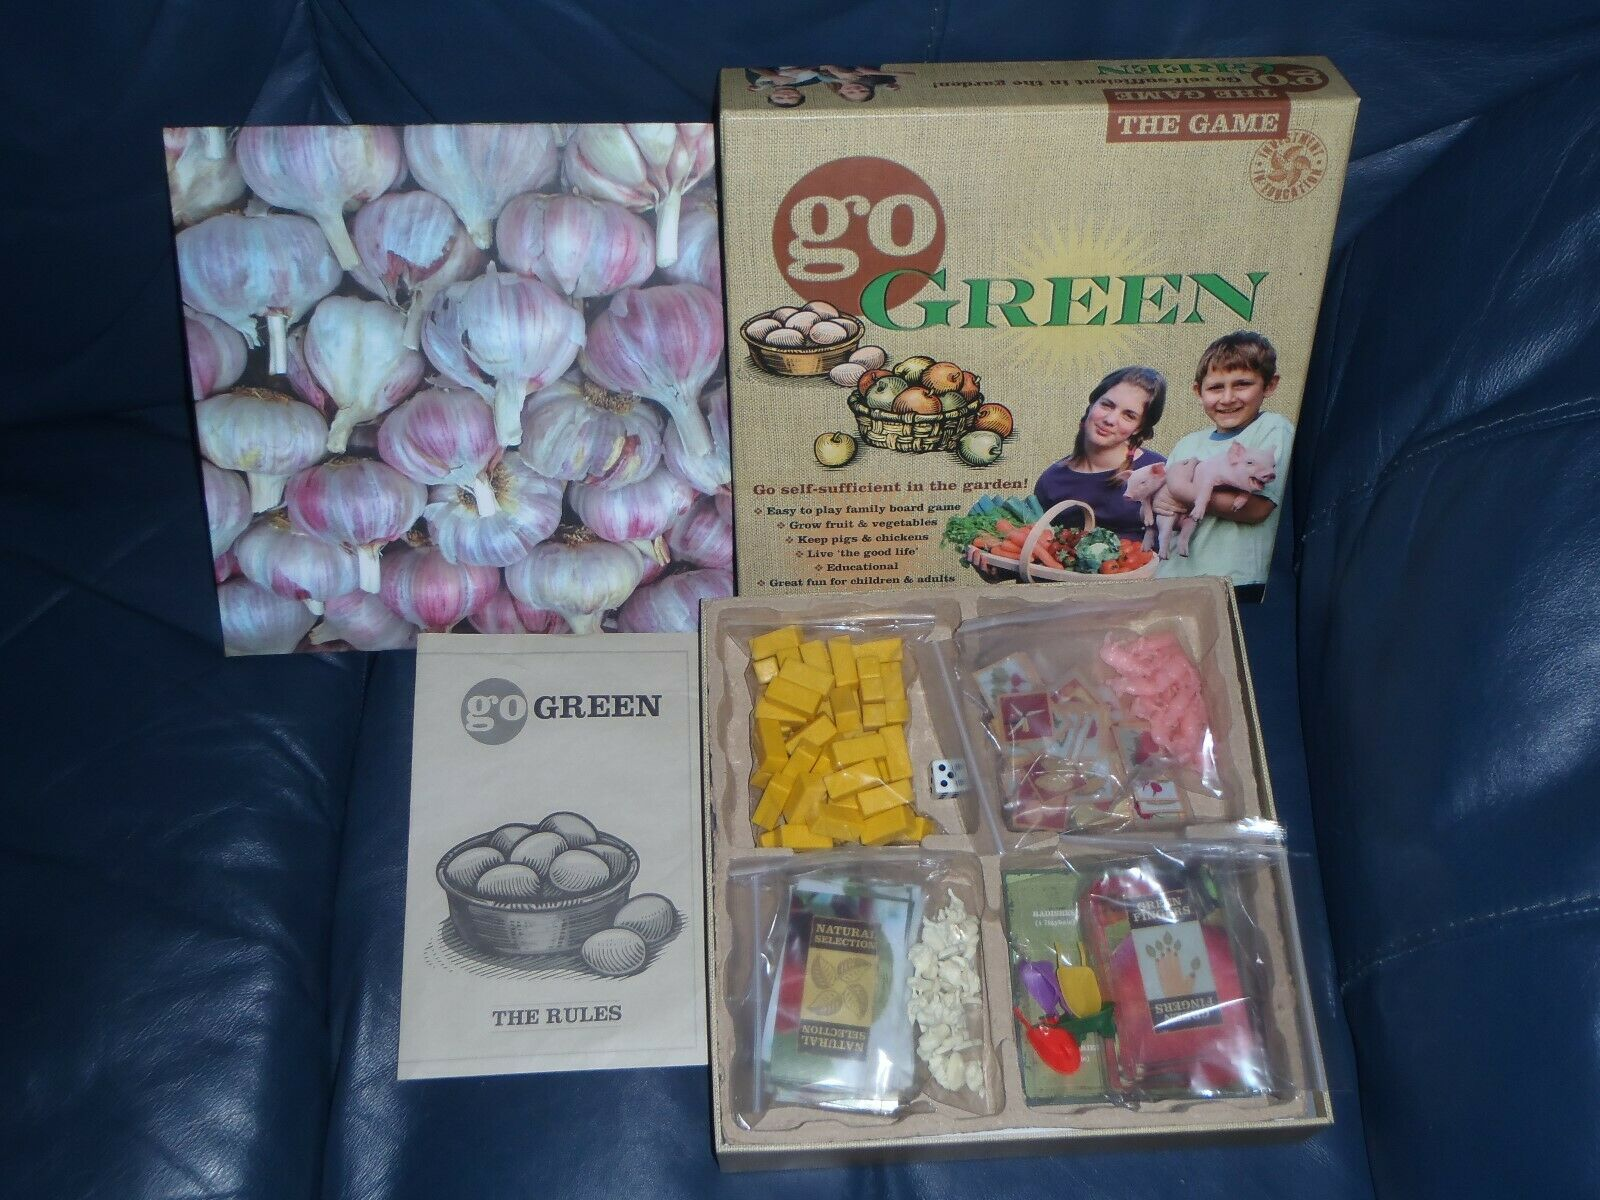 GO GREEN Self Sufficient Garden Educational Board Game